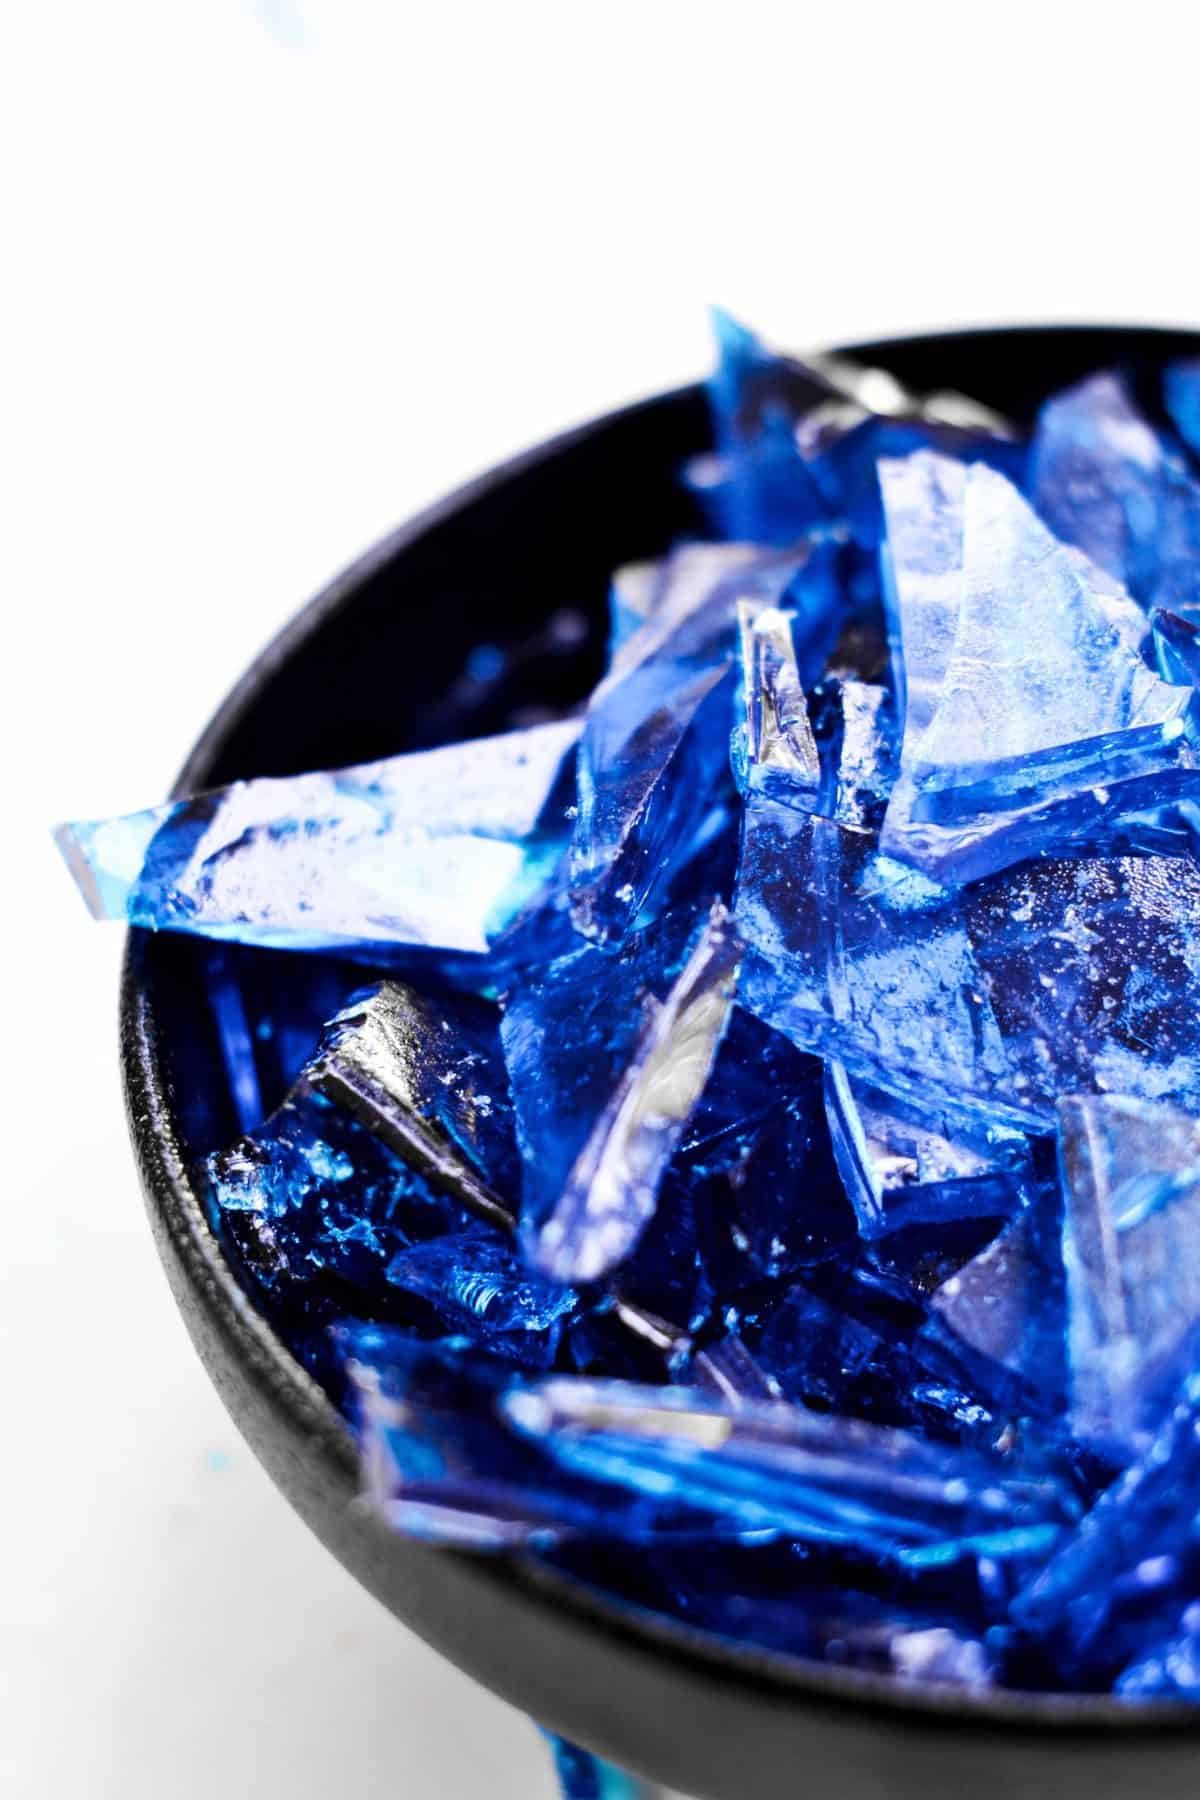 pieces of rock candy in a bowl